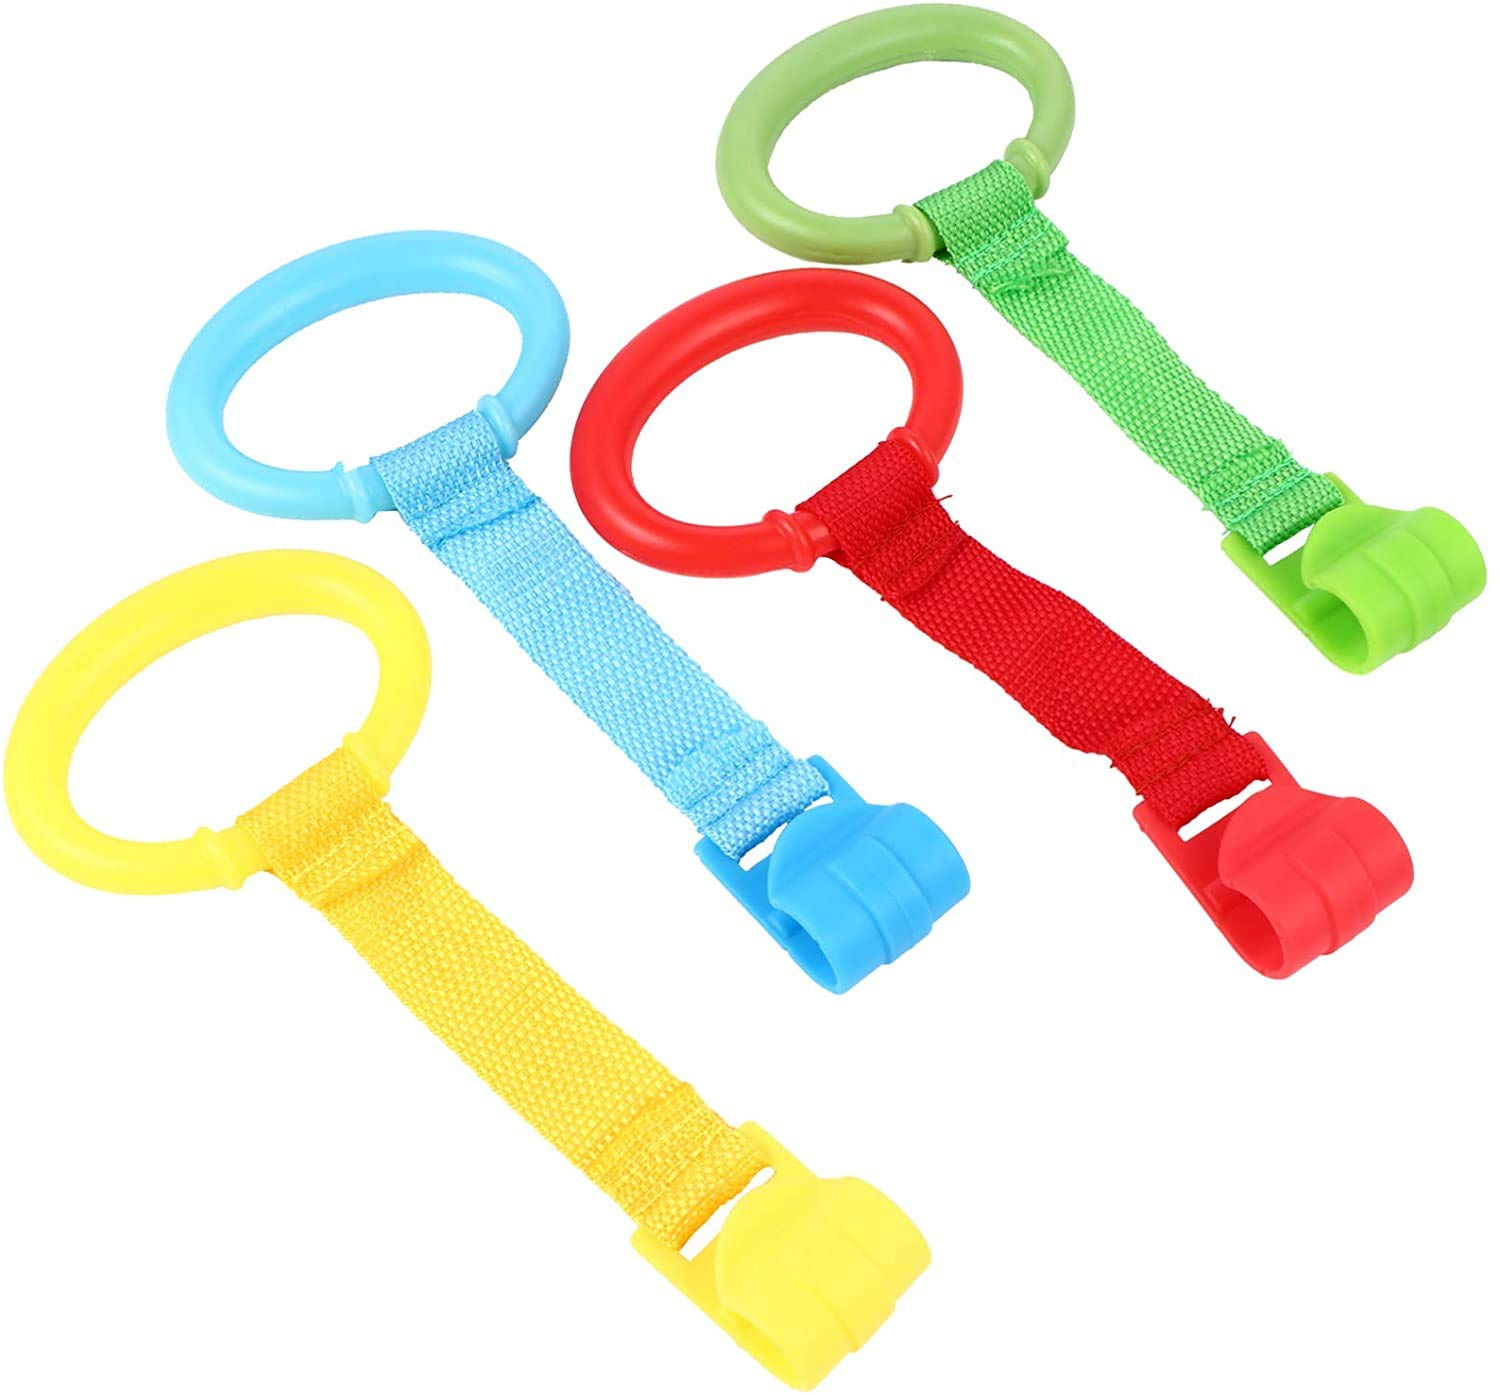 Baby Toddler Walking Assistant Pull Up Ring Safety Stand Up Rings for Toddler-4PCS